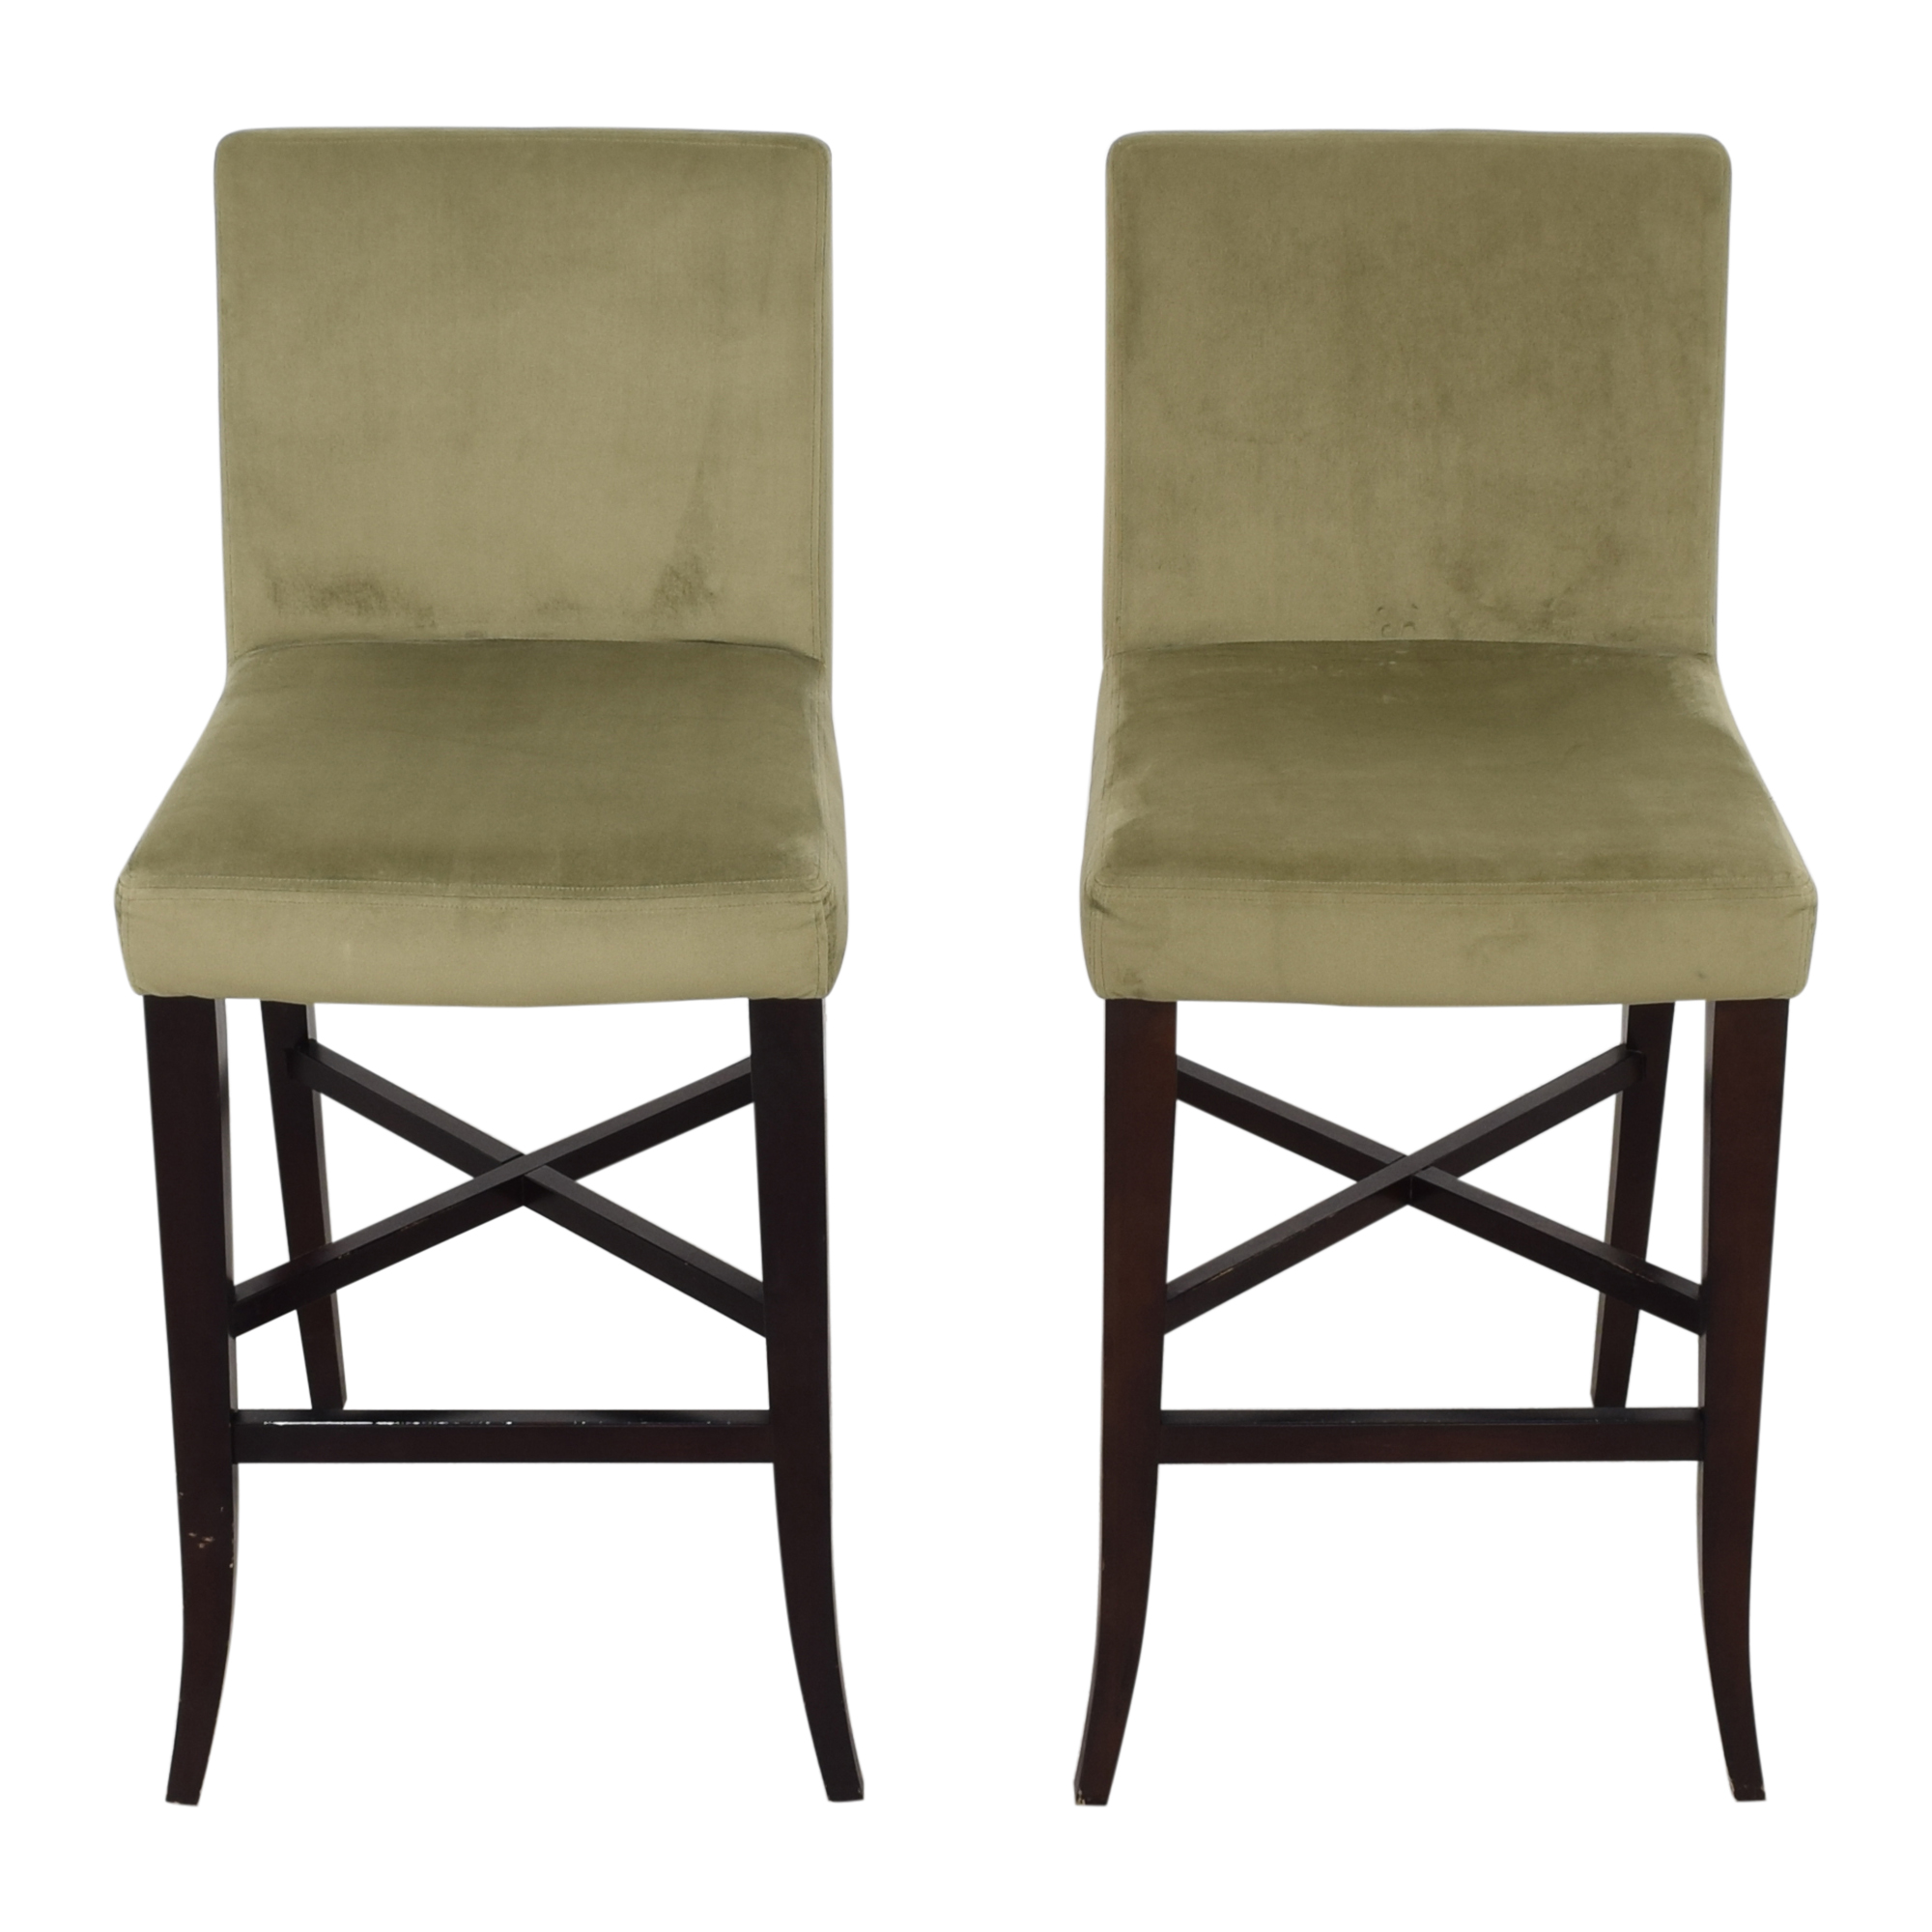 Crate & Barrel Upholstered Bar Stools sale